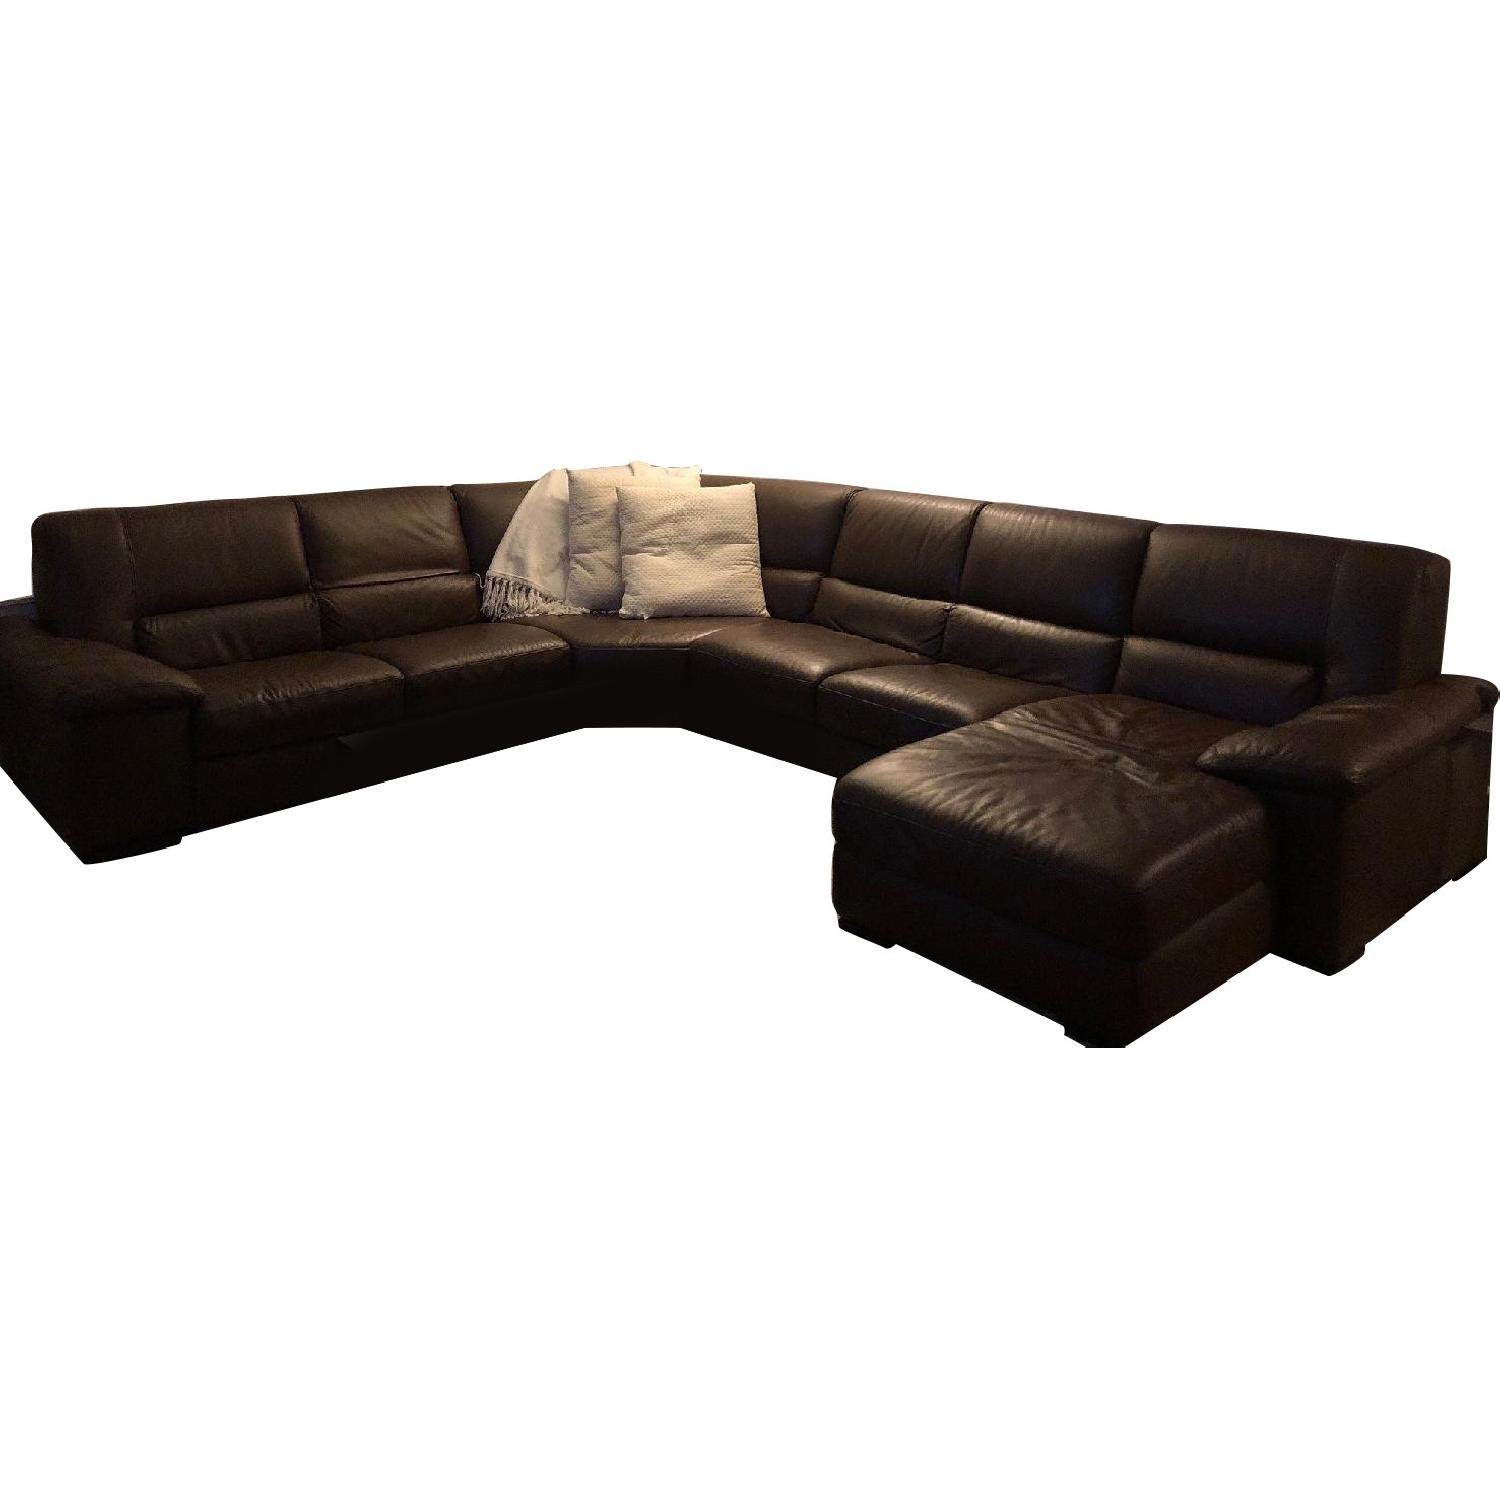 Macy's Milan Leather 4-Piece Sectional Sofa